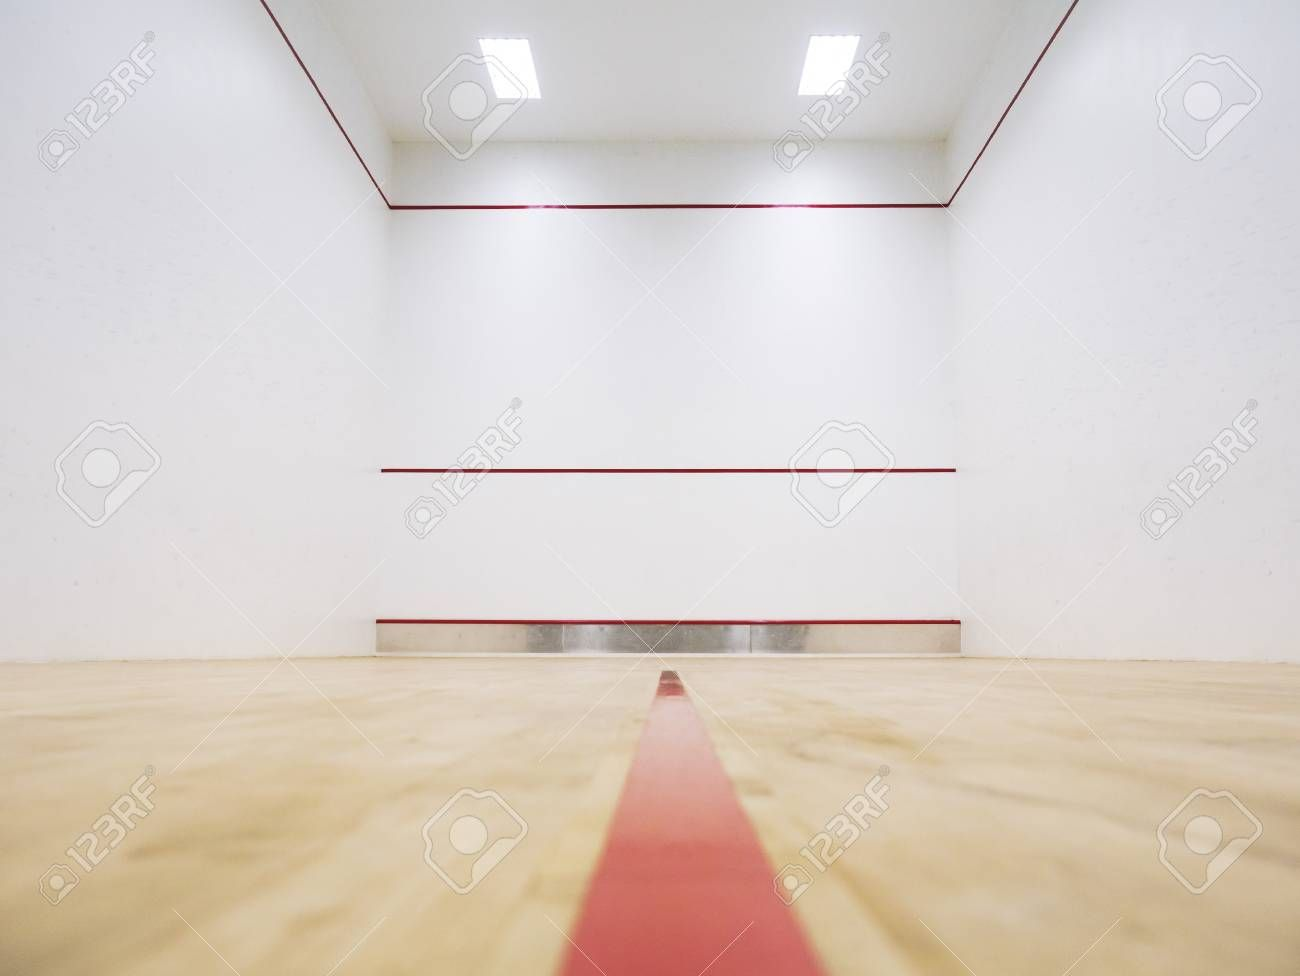 Squash Court Gym Room Wall Background Stock Photo Sponsored Gym Room Squash Court Stock Gym Room Wall Background Print Designs Inspiration